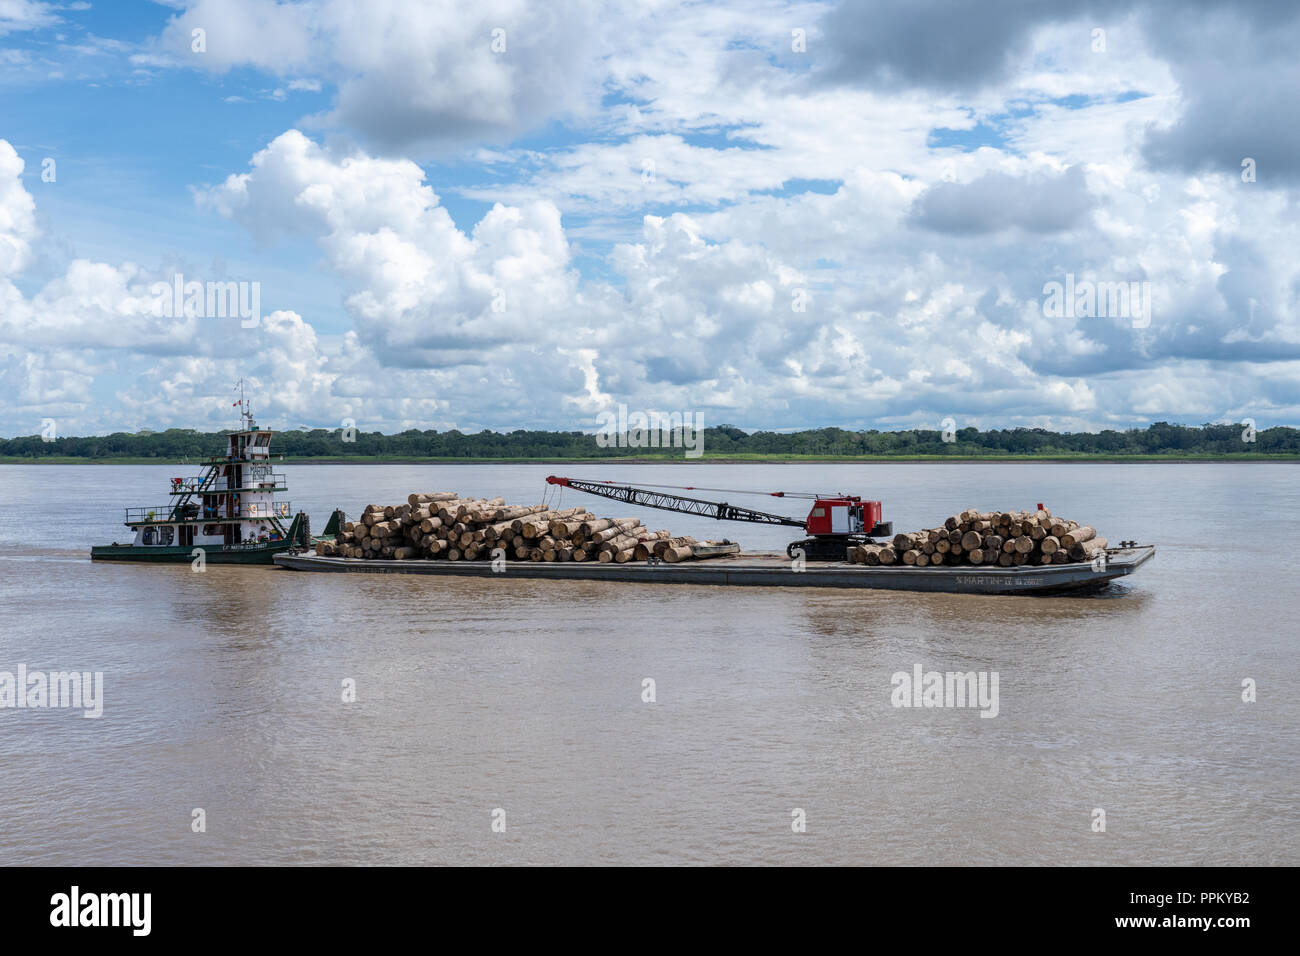 Pacaya Samiria Reserve, Peru, South America.  Towboat or pushboat pushing a barge load of trees to market on the Ucayali River. - Stock Image